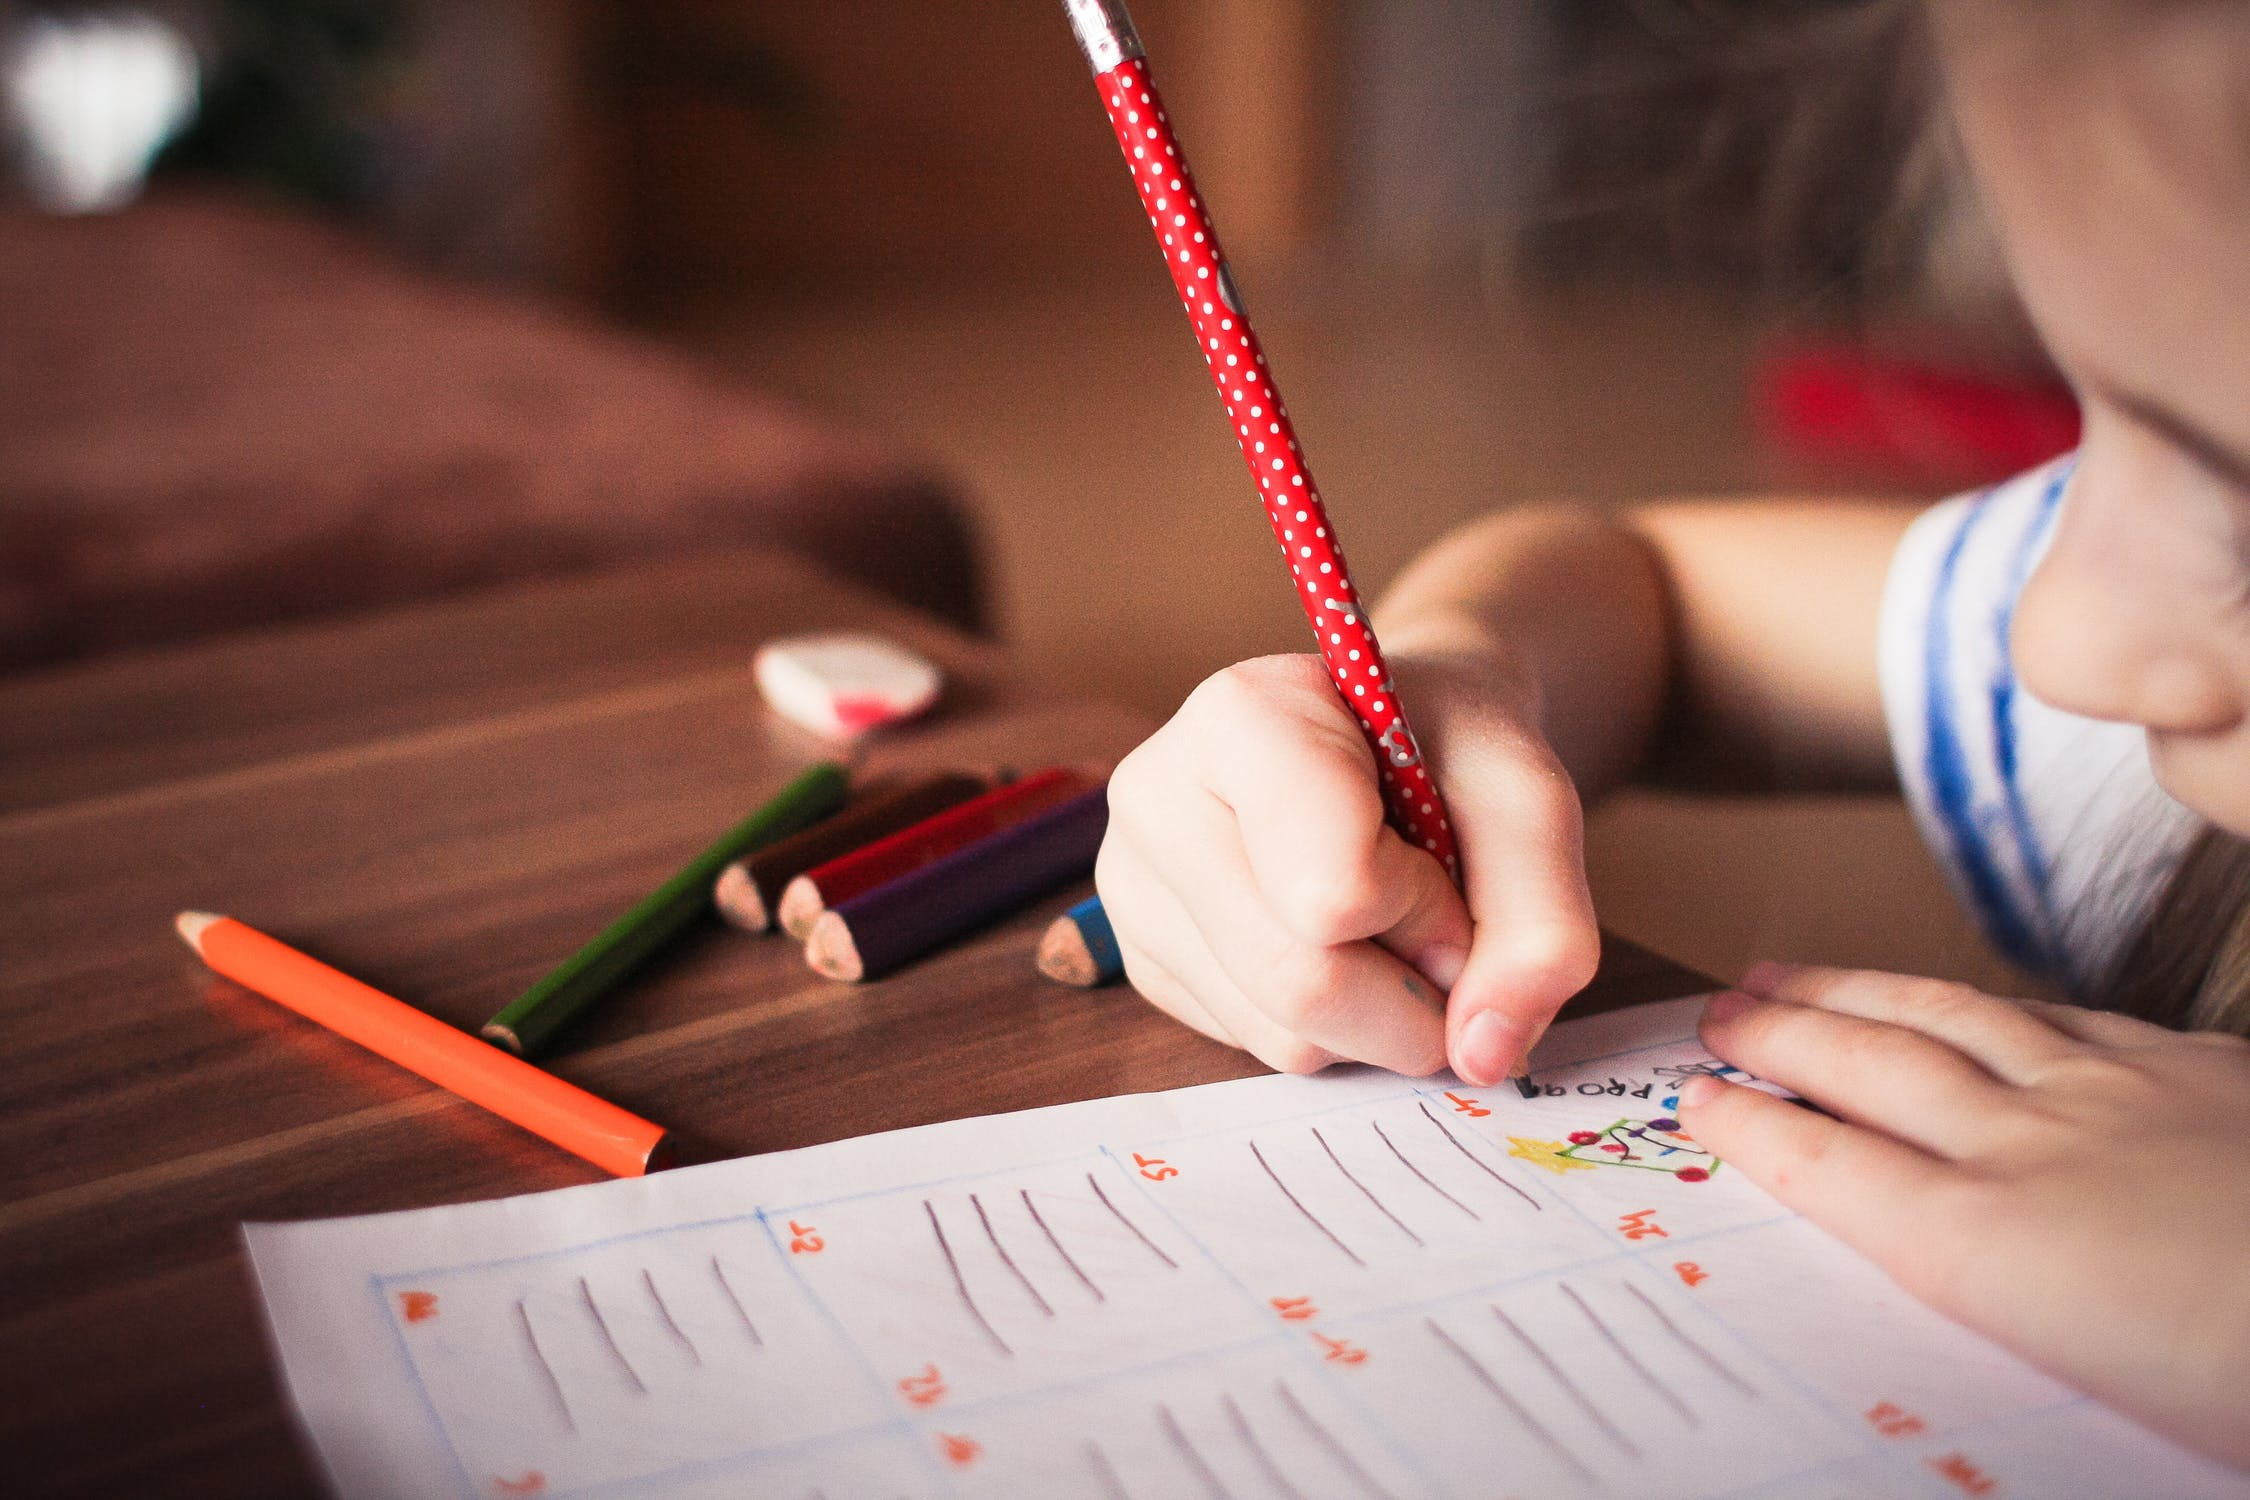 5 Ways to Be Involved in Your Child's Education Without Being Overbearing